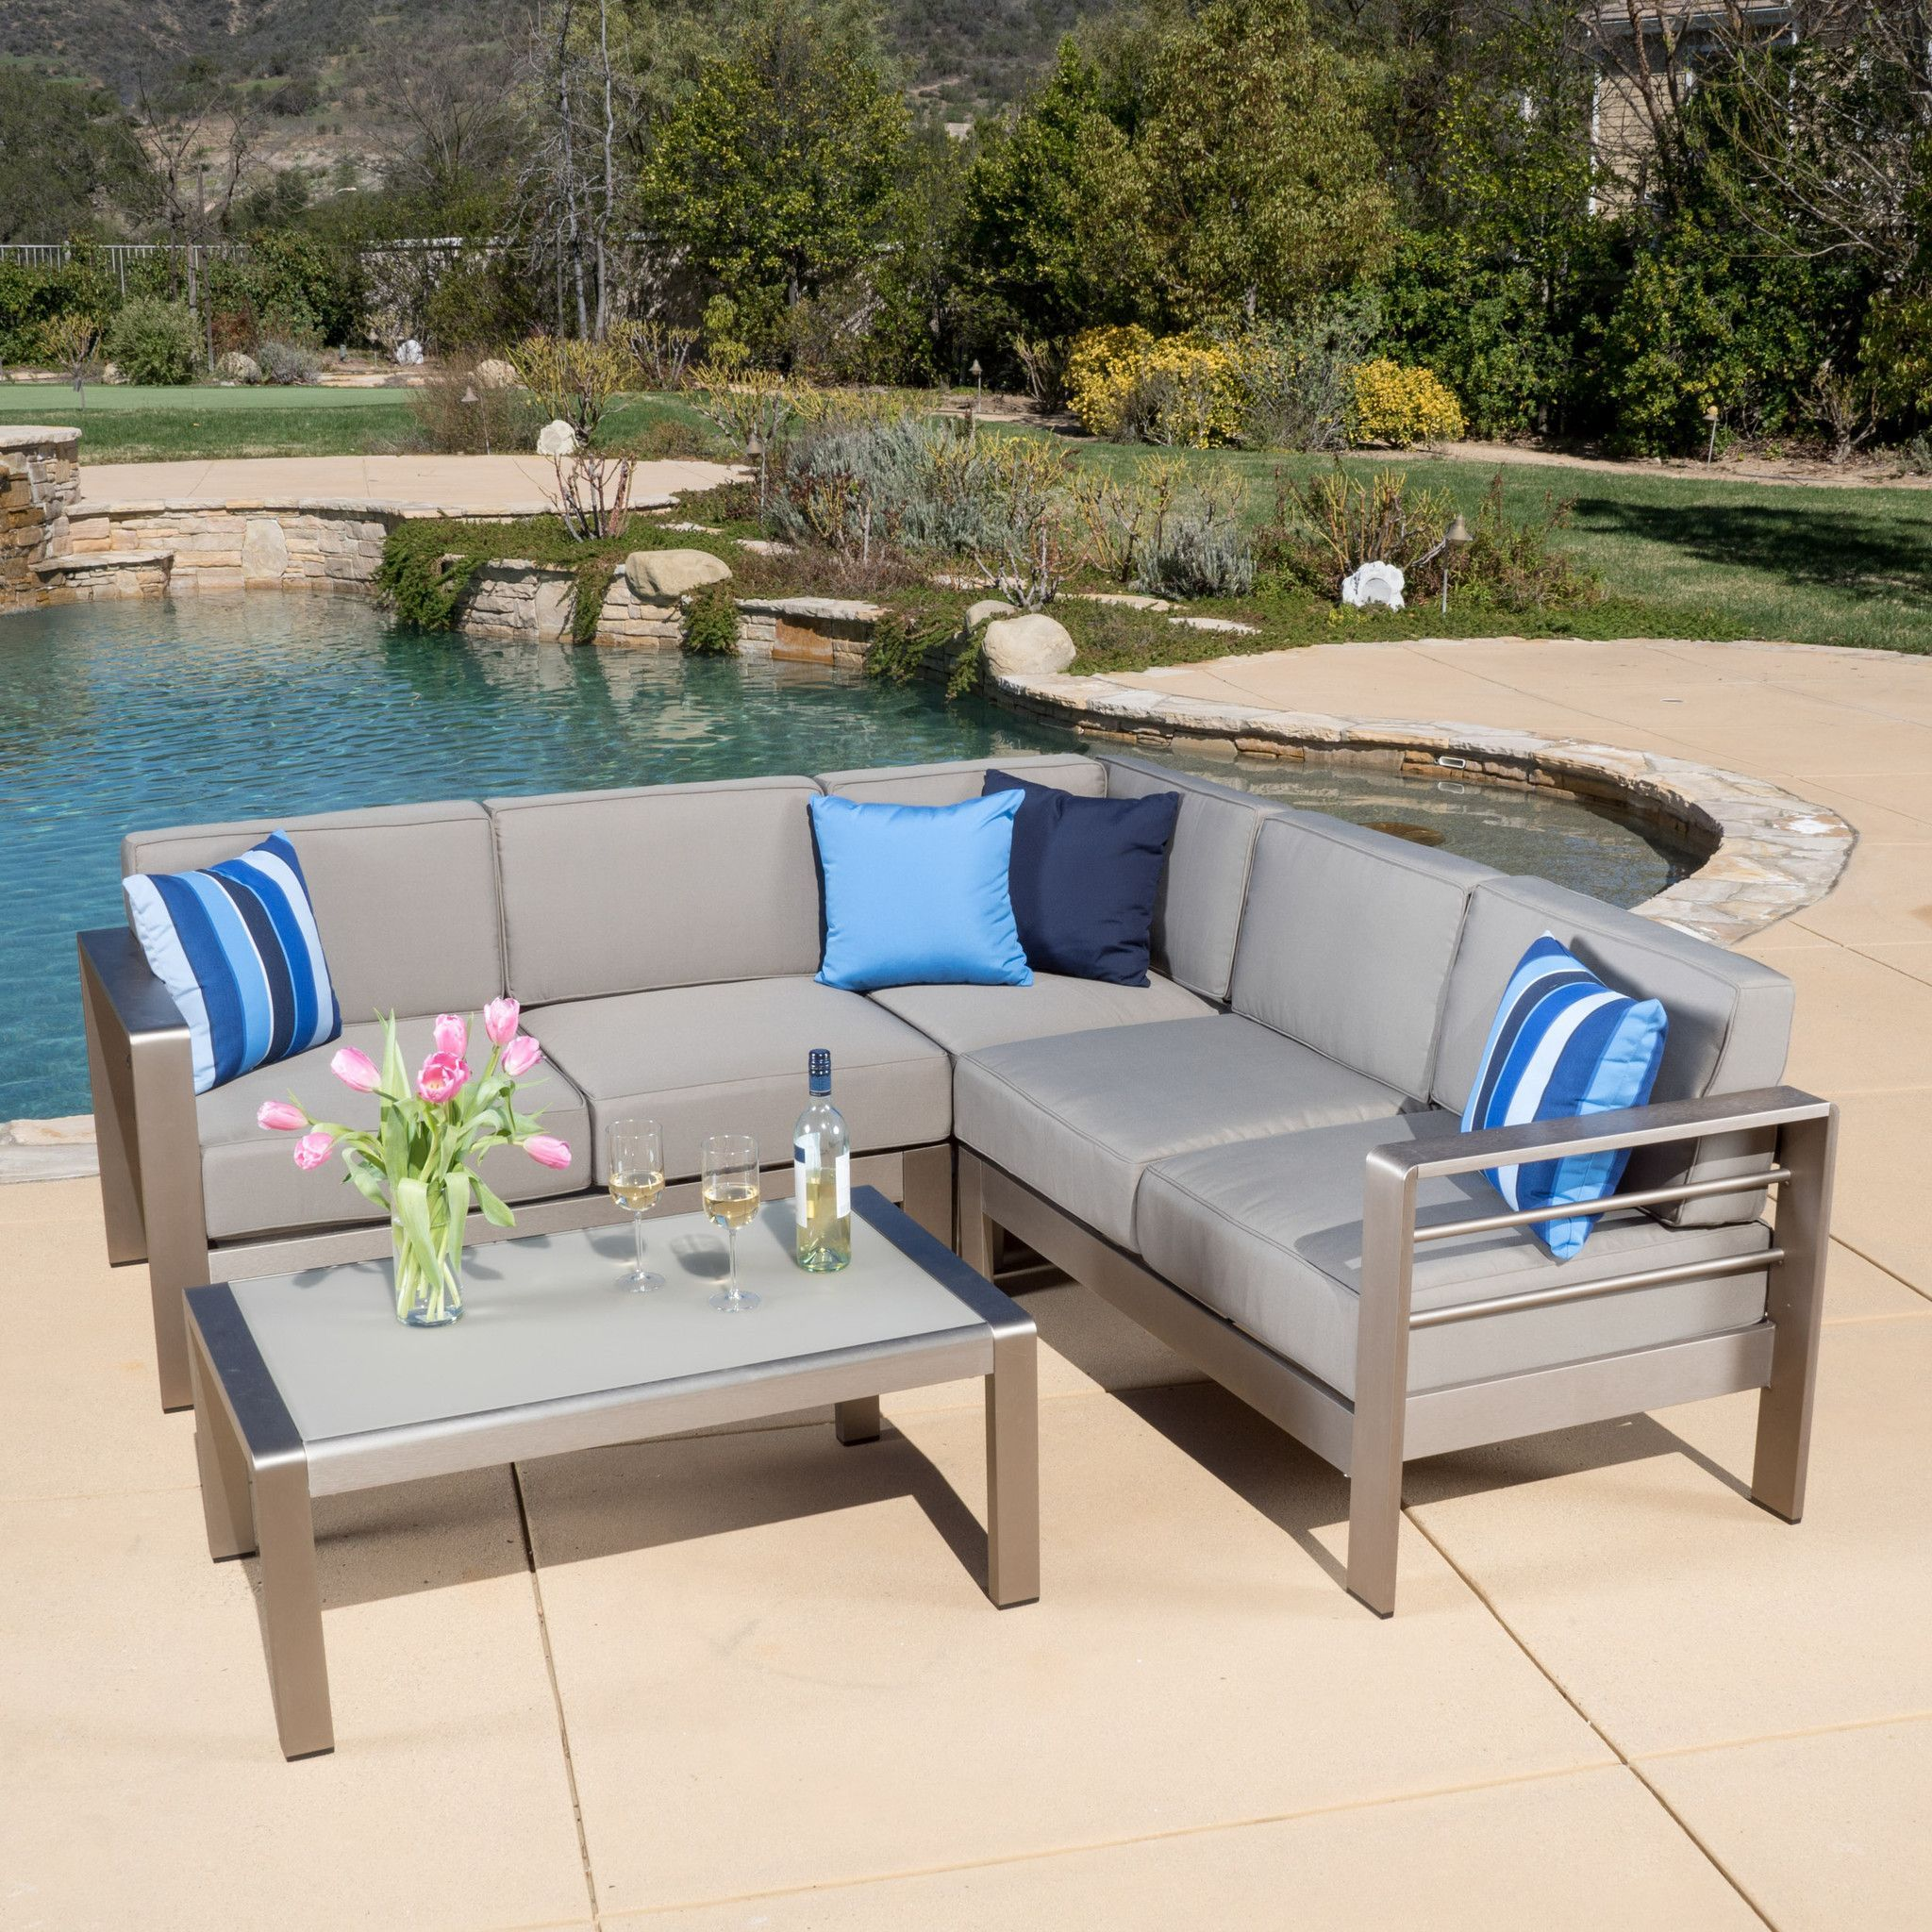 Charmant Denise Austin Home Sonora Outdoor Aluminum 4 Piece Sofa Set With Cushions